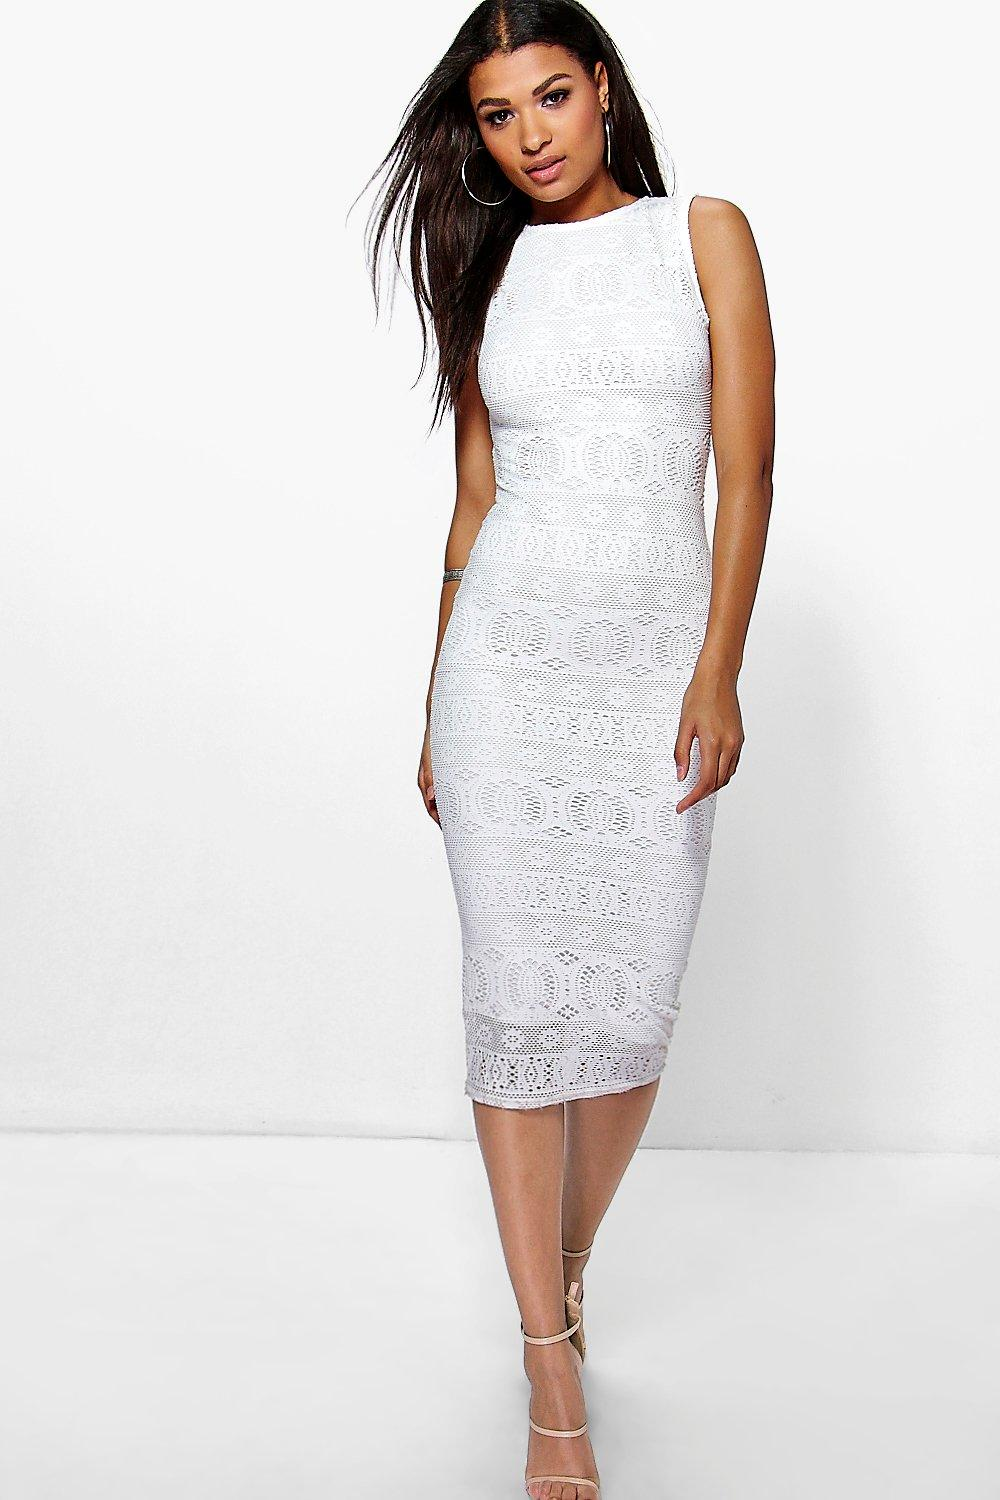 Dina Crochet Lace Mdi Bodycon Dress